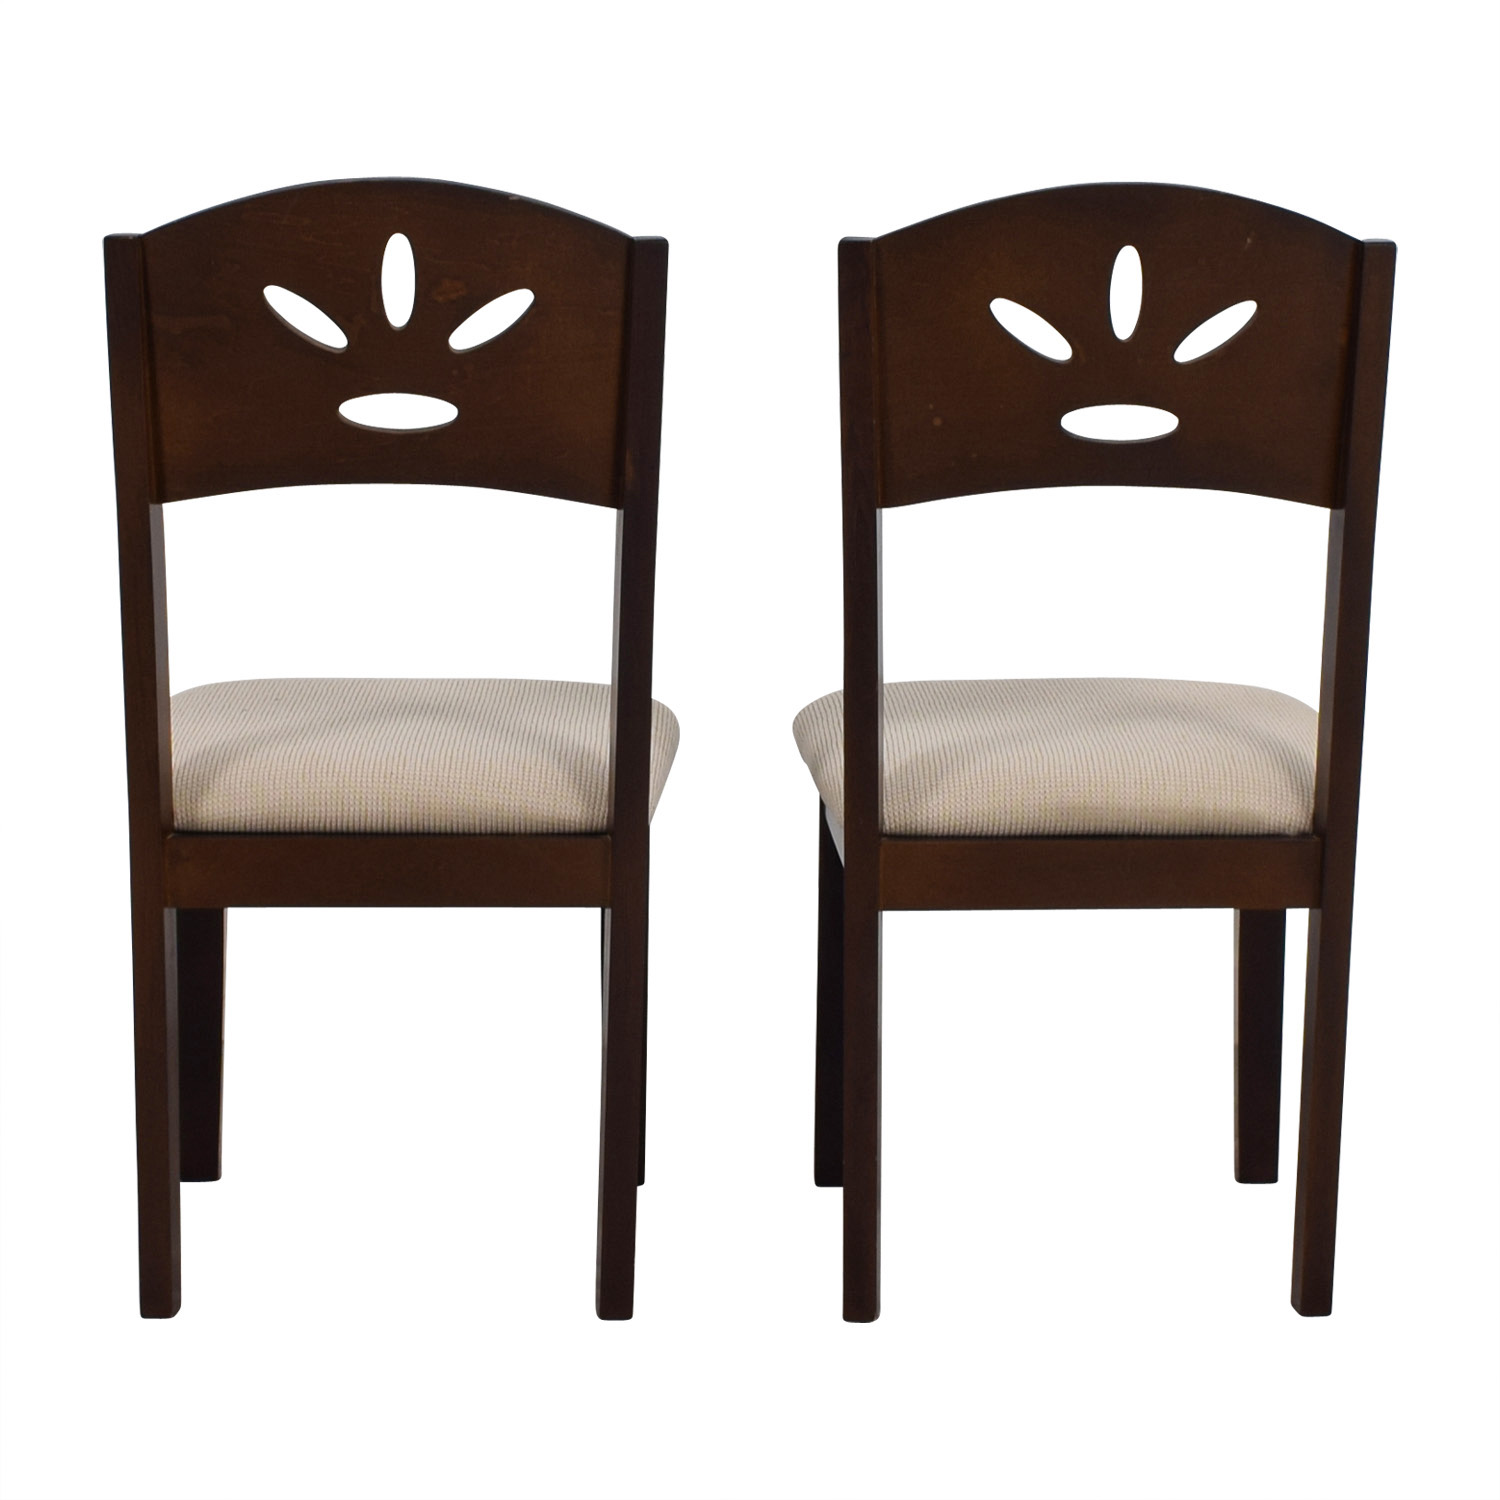 Off White and Wood Dining Chairs